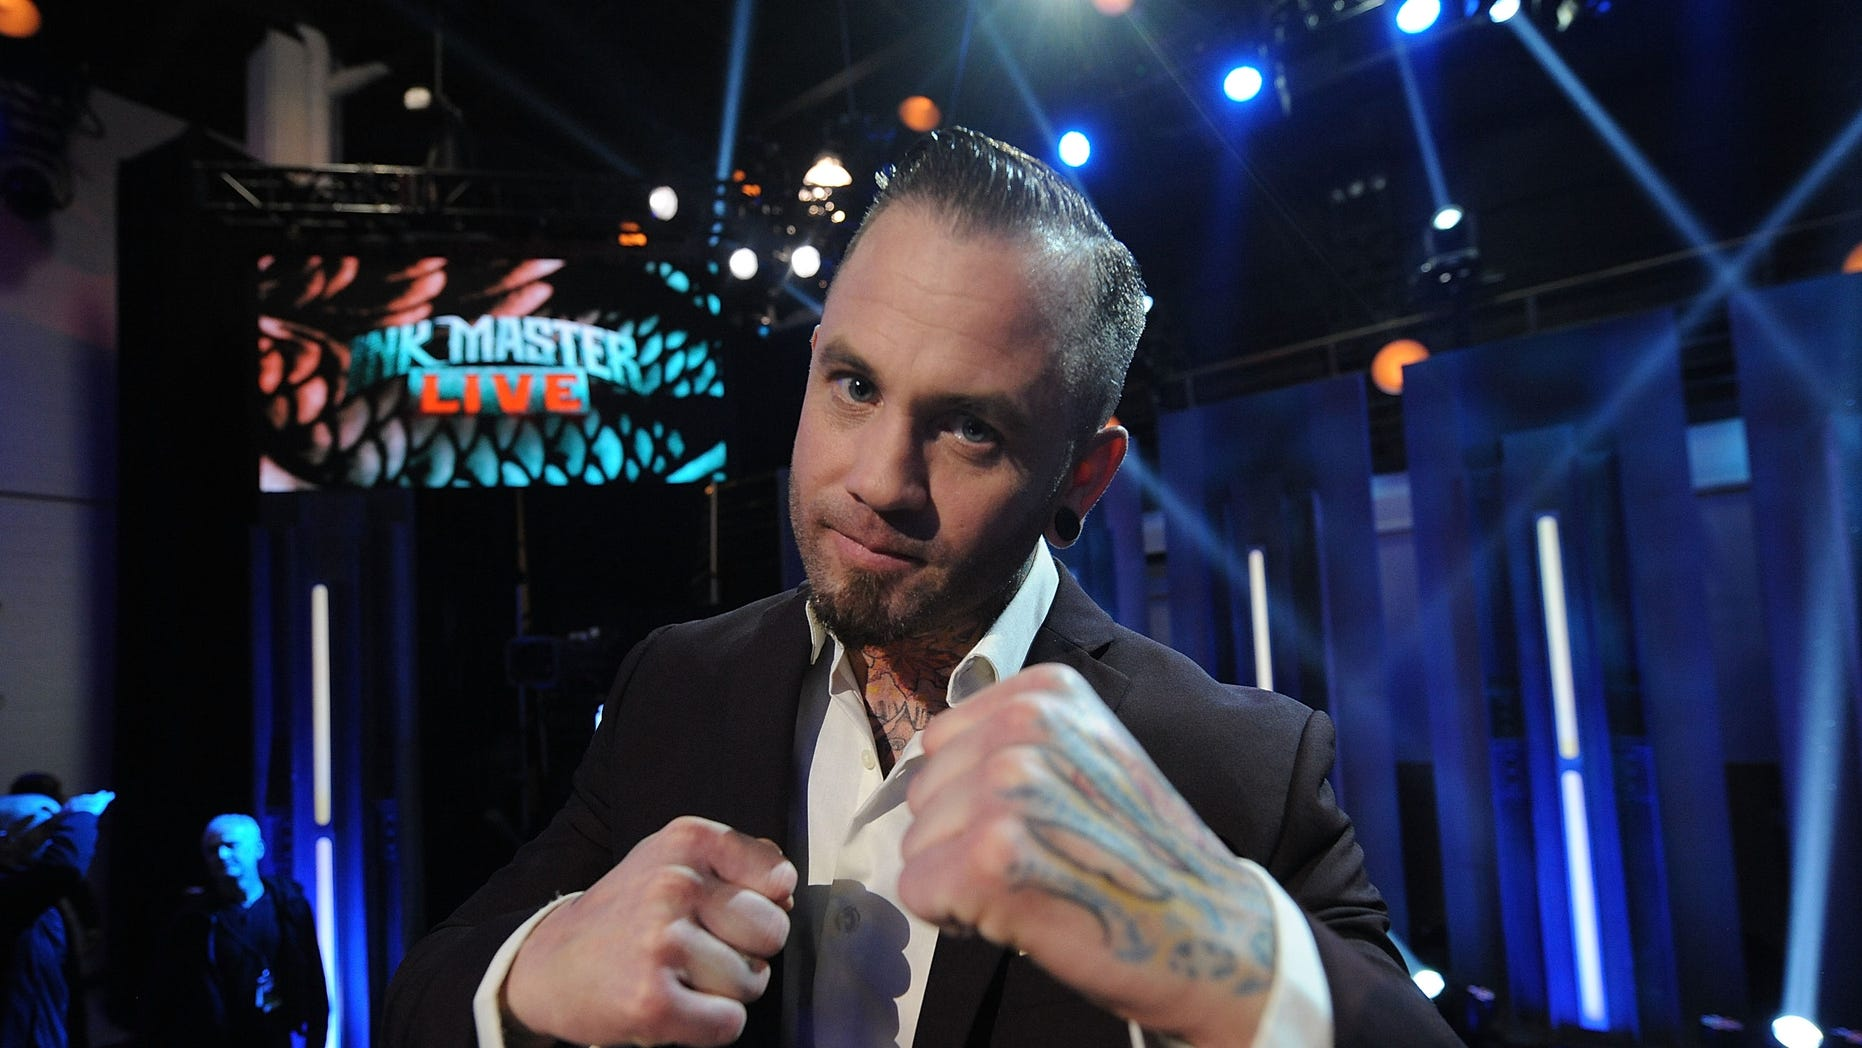 """Tattoo artist Scott Marshall from Chicago poses for a photo after winning Spike TV's """"Ink Master"""" Season 4 Finale at SIR Stage 37 on May 20, 2014 in New York City.  (Photo by Brad Barket/Getty Images for Spike TV)"""